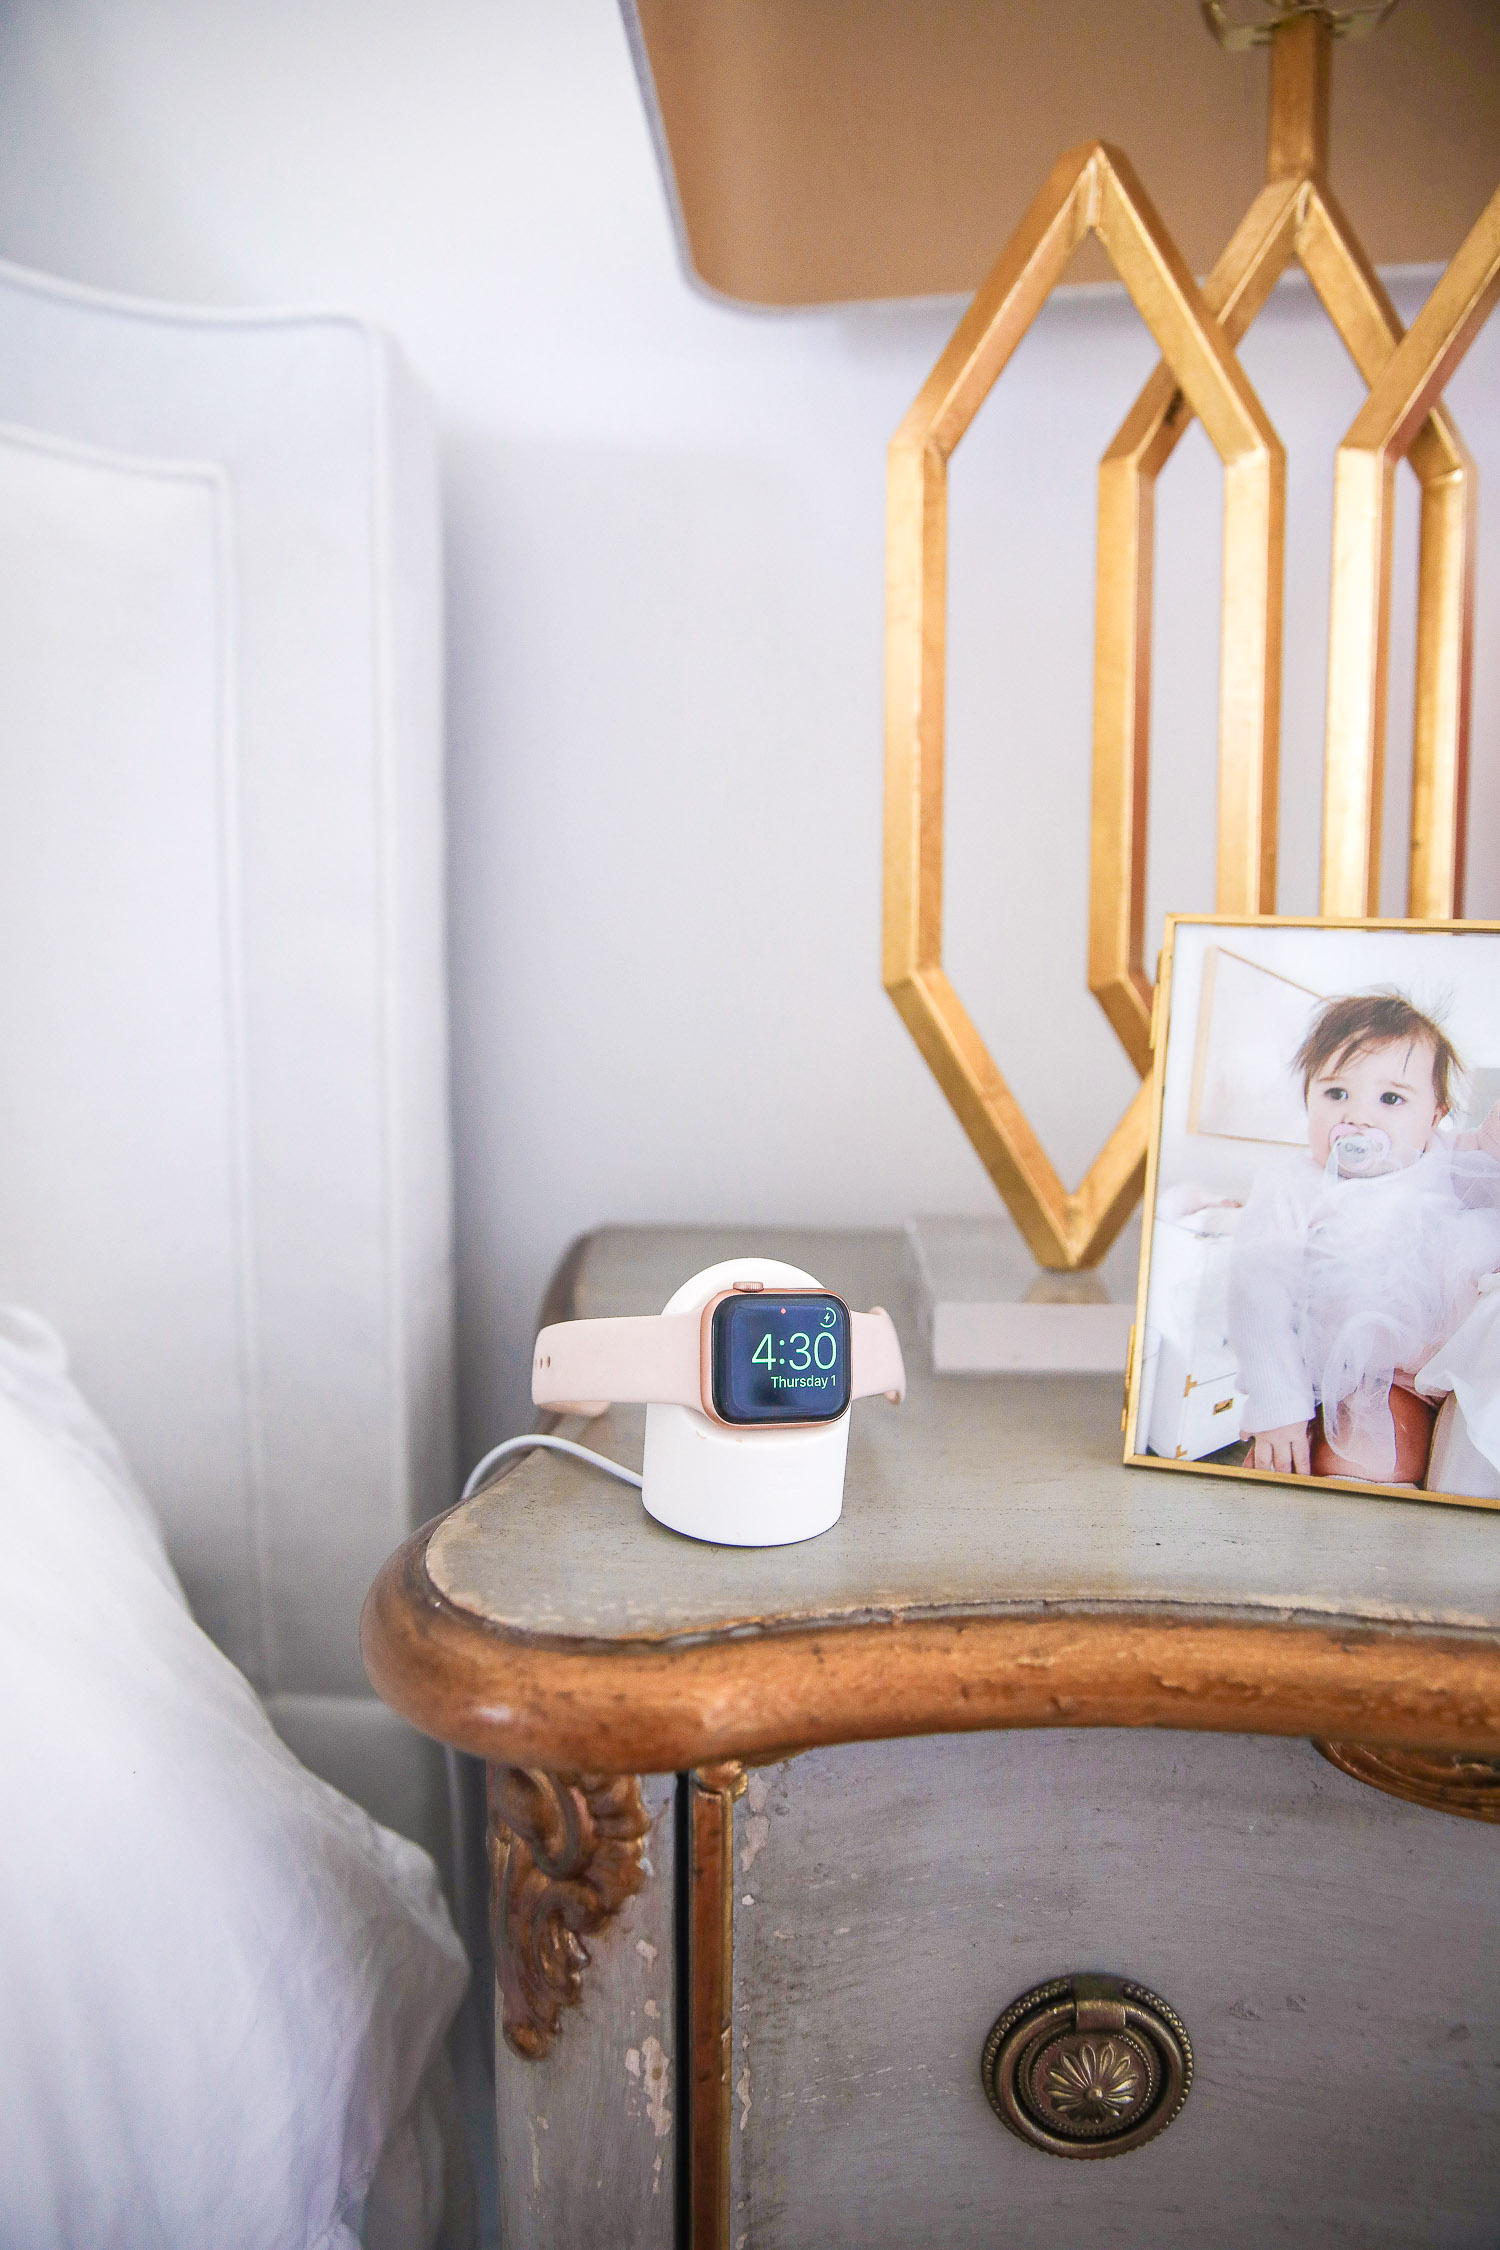 amazon Apple Watch charger, best Apple Watch charger display, Emily Gemma amazon |Amazon Must Haves by popular US life and style blog, The Sweetest Thing: image of a Apple watch charging stand.